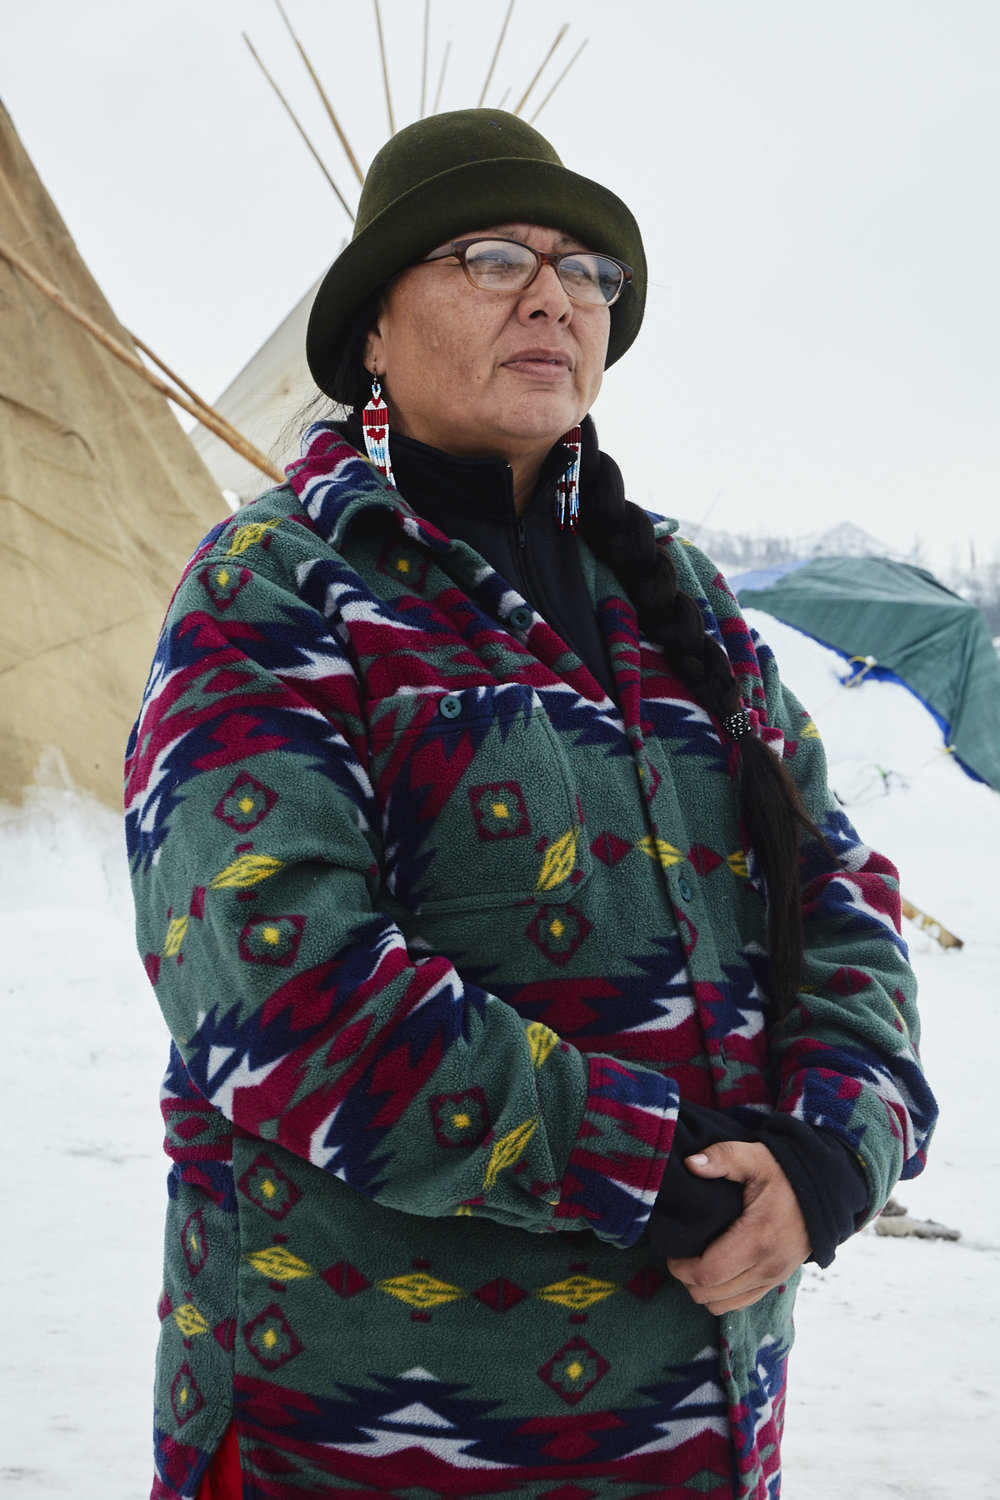 Melaine Stoneman, from the Sicangu Lakota (Burnt Thigh Nation) tribe in Pine Ridge Reservation, South Dakota